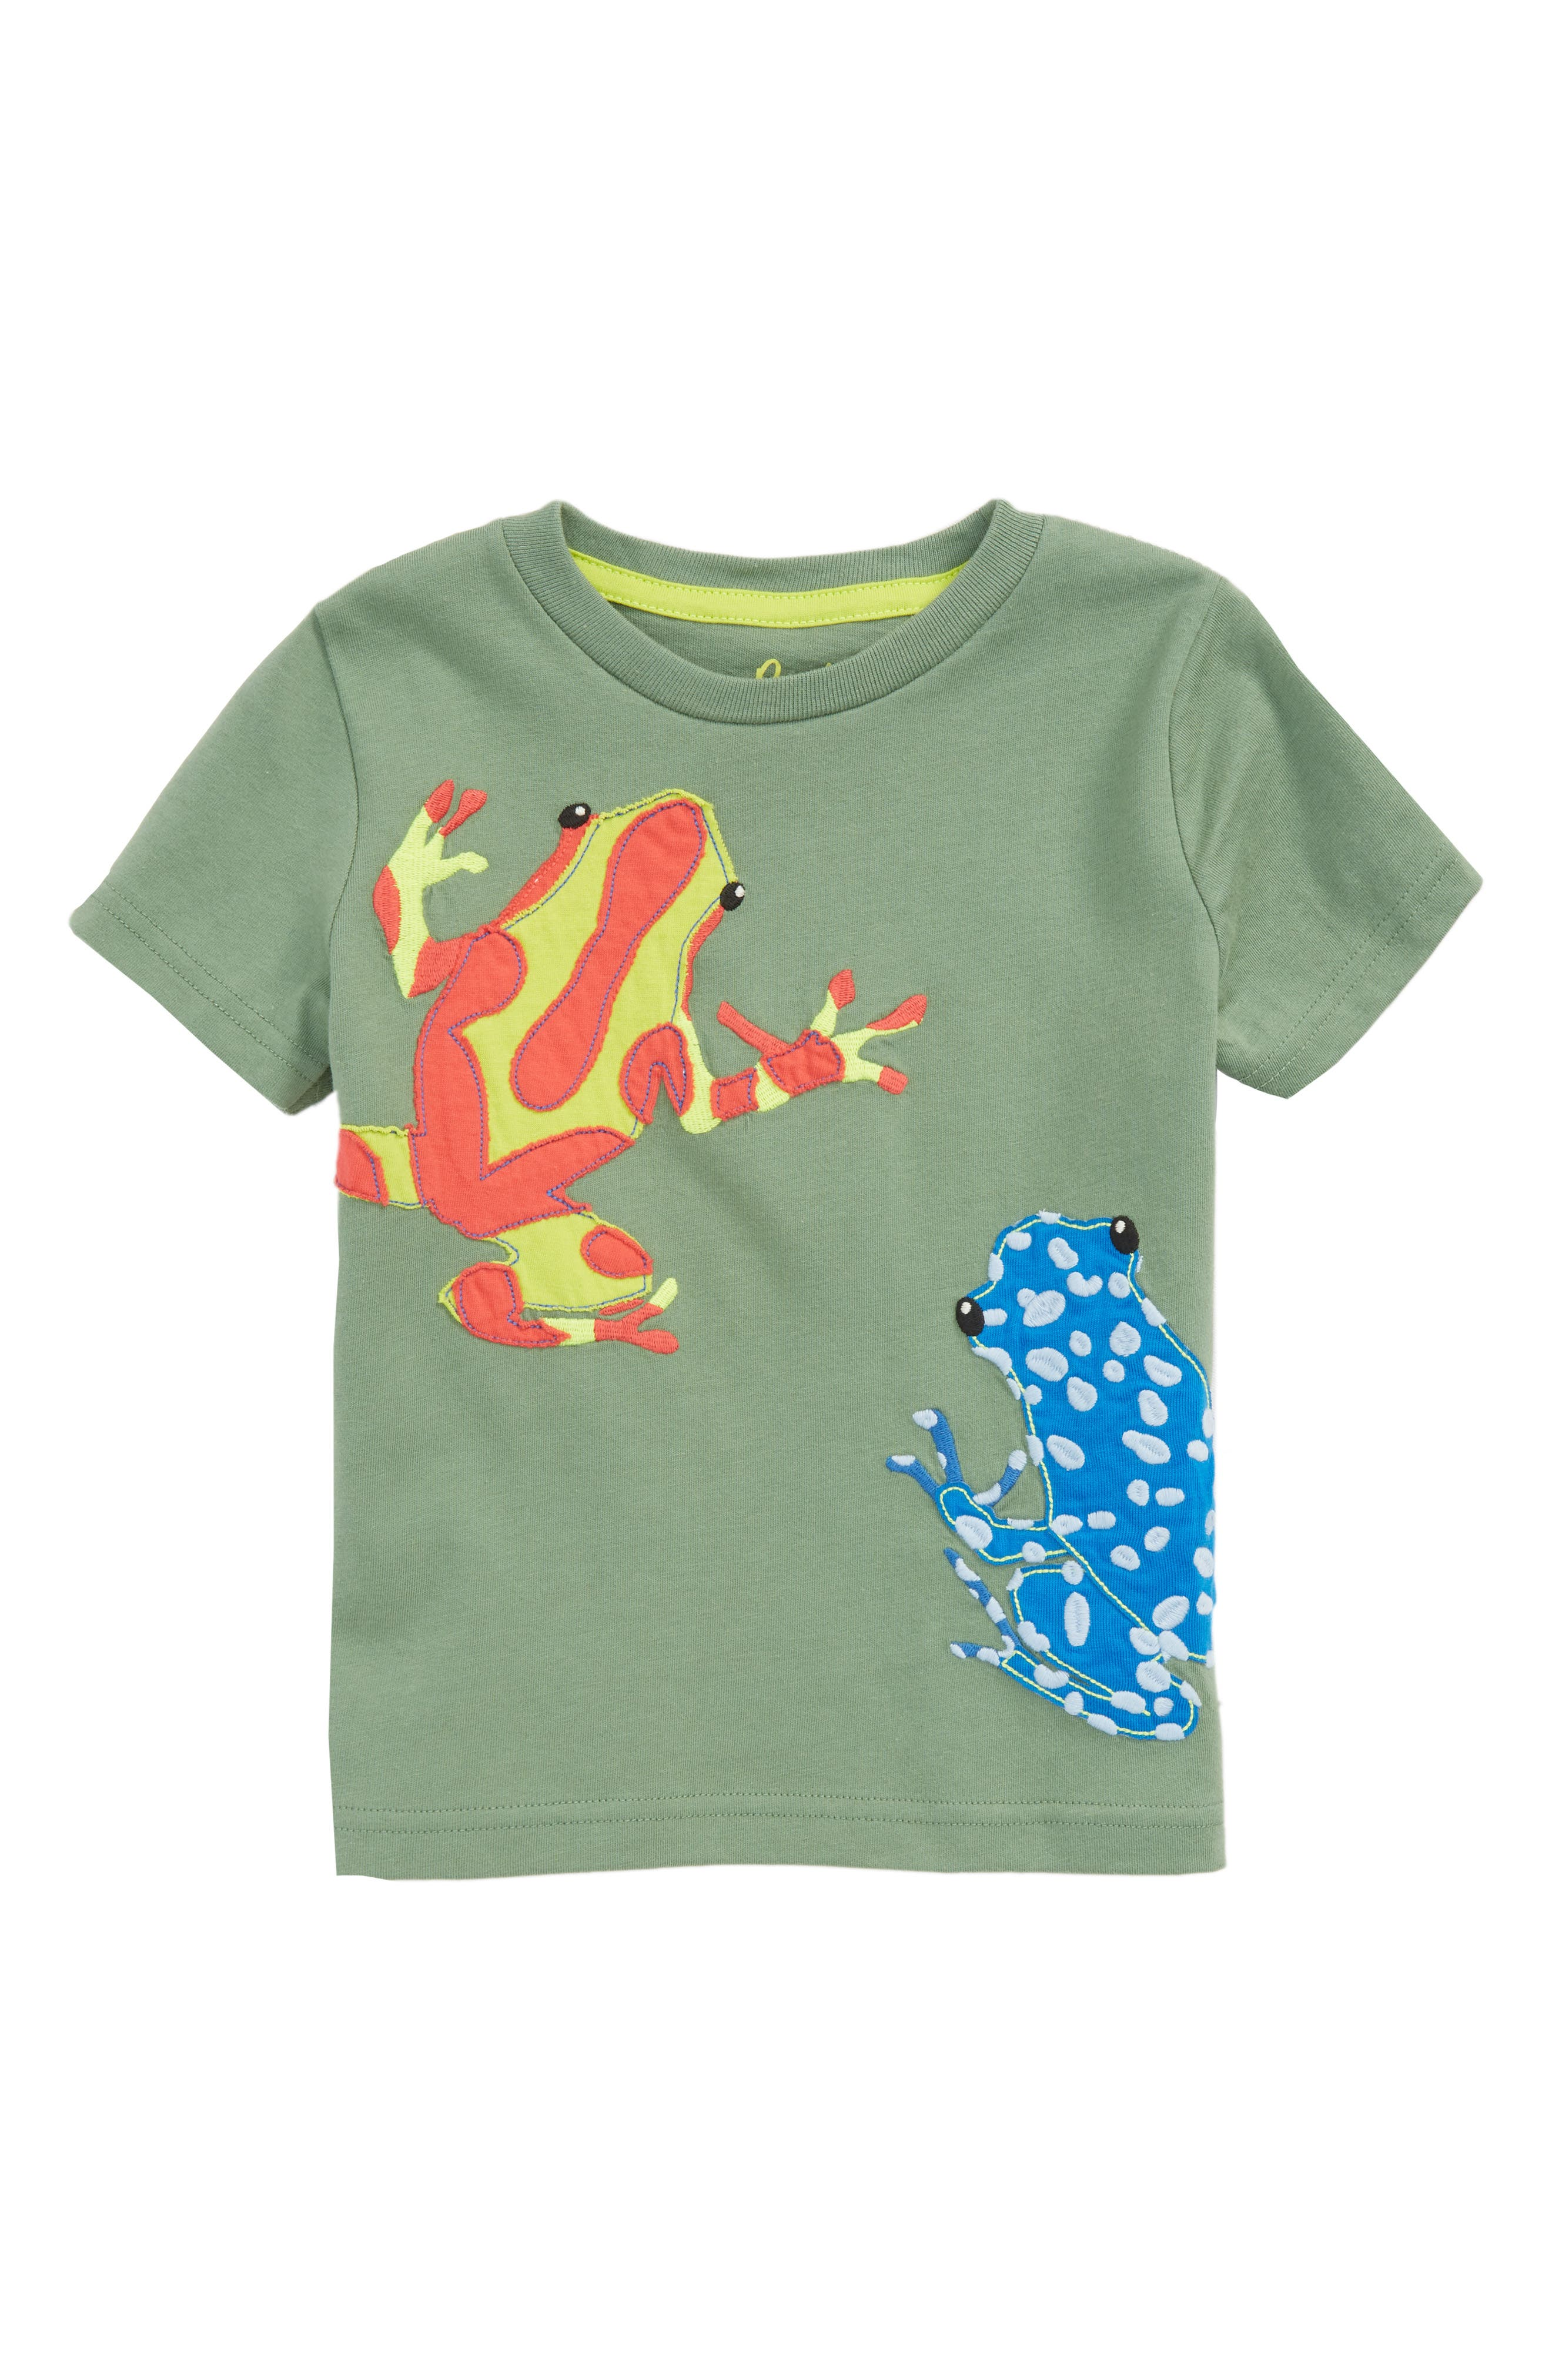 Frogs Appliqué T-Shirt,                             Main thumbnail 1, color,                             Bamboo Green Frogs